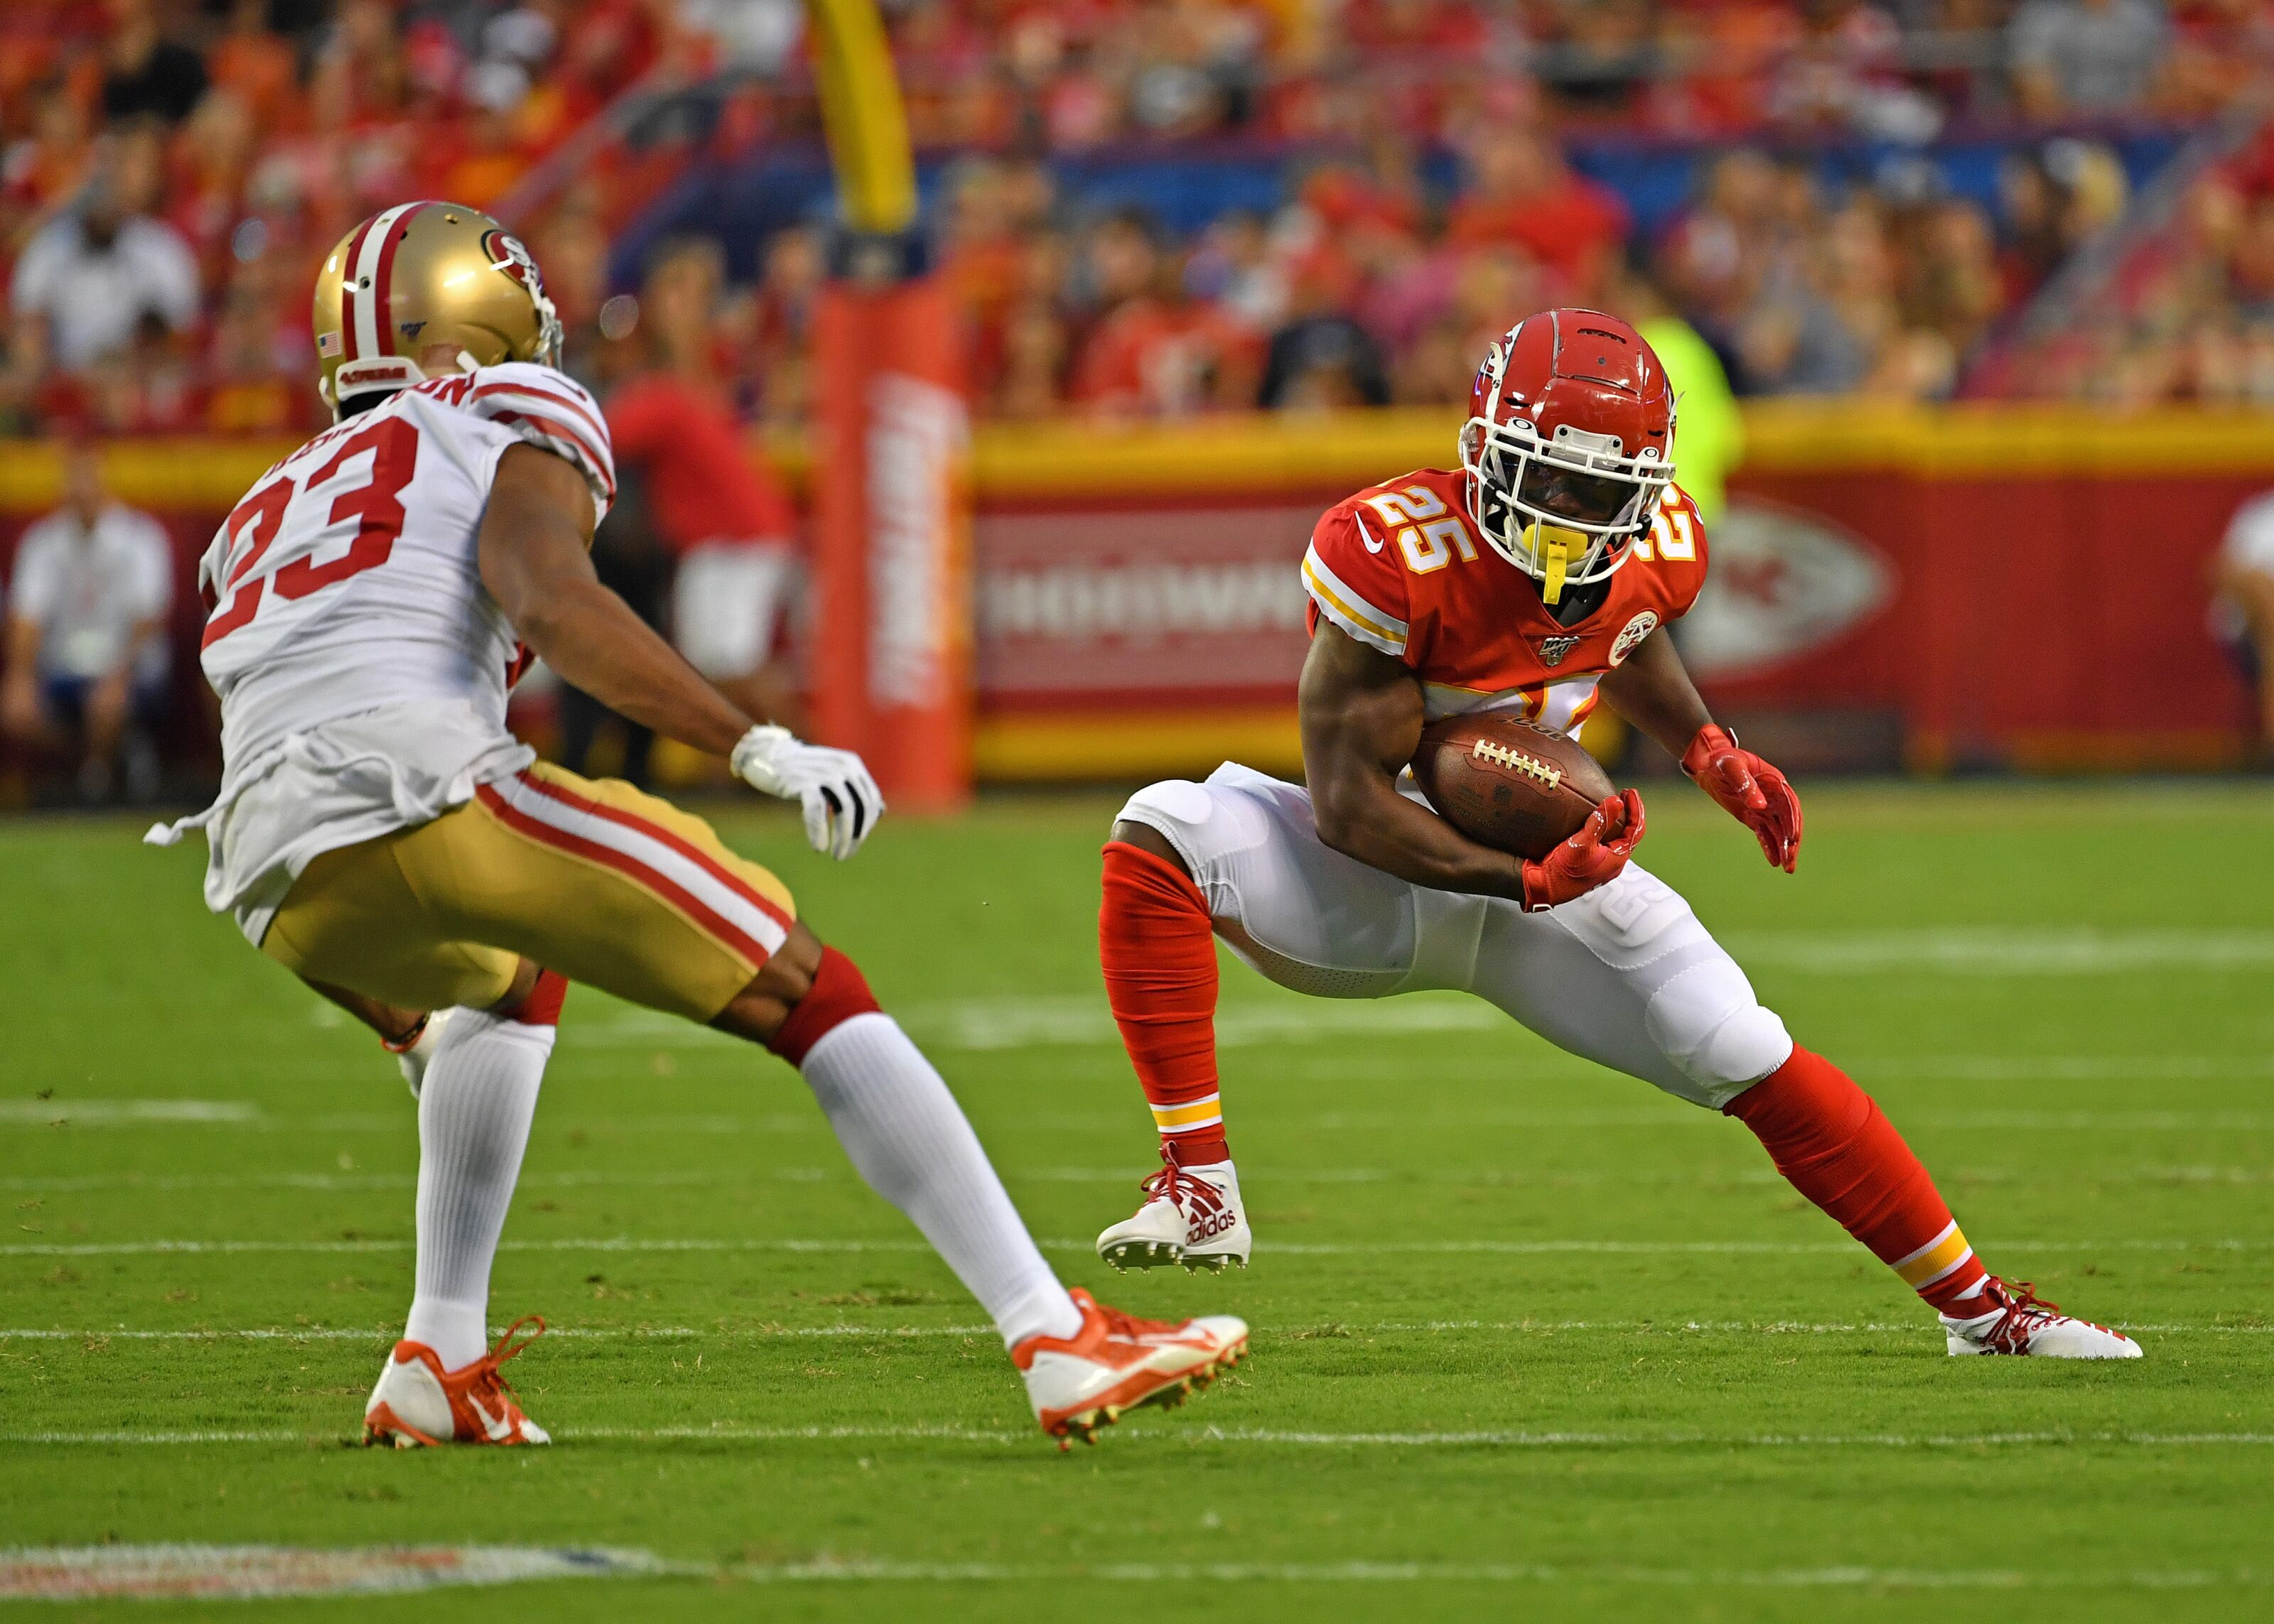 KC Chiefs: Expect breakout game for Darwin Thompson vs Ravens